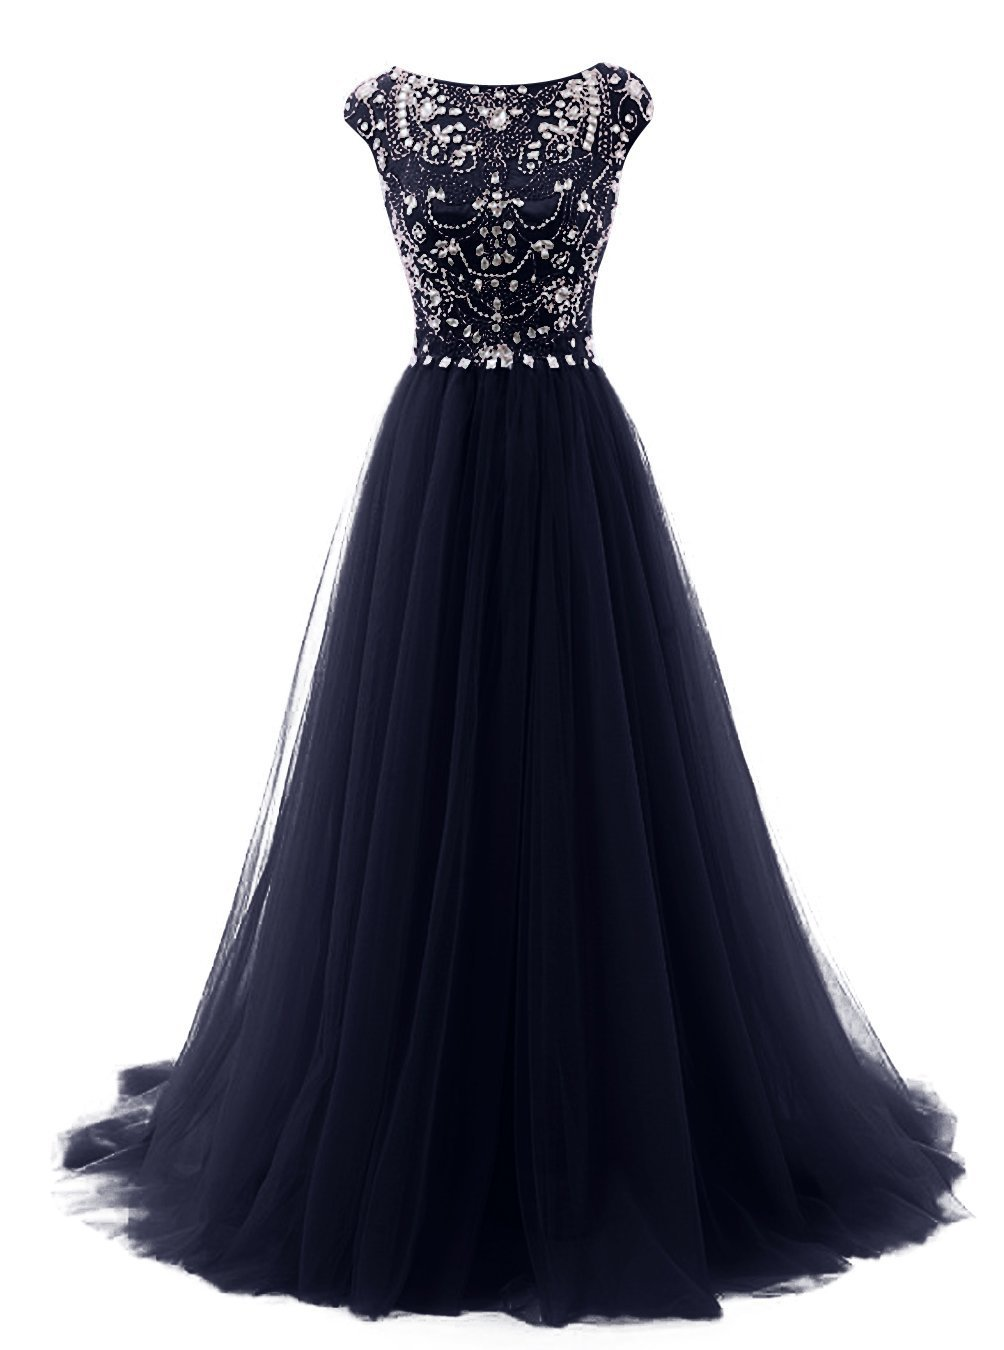 FASHION DRESS Women's Beads Long Prom Dress Tulle Cap Sleeves Evening Dress US8 Navy Blue